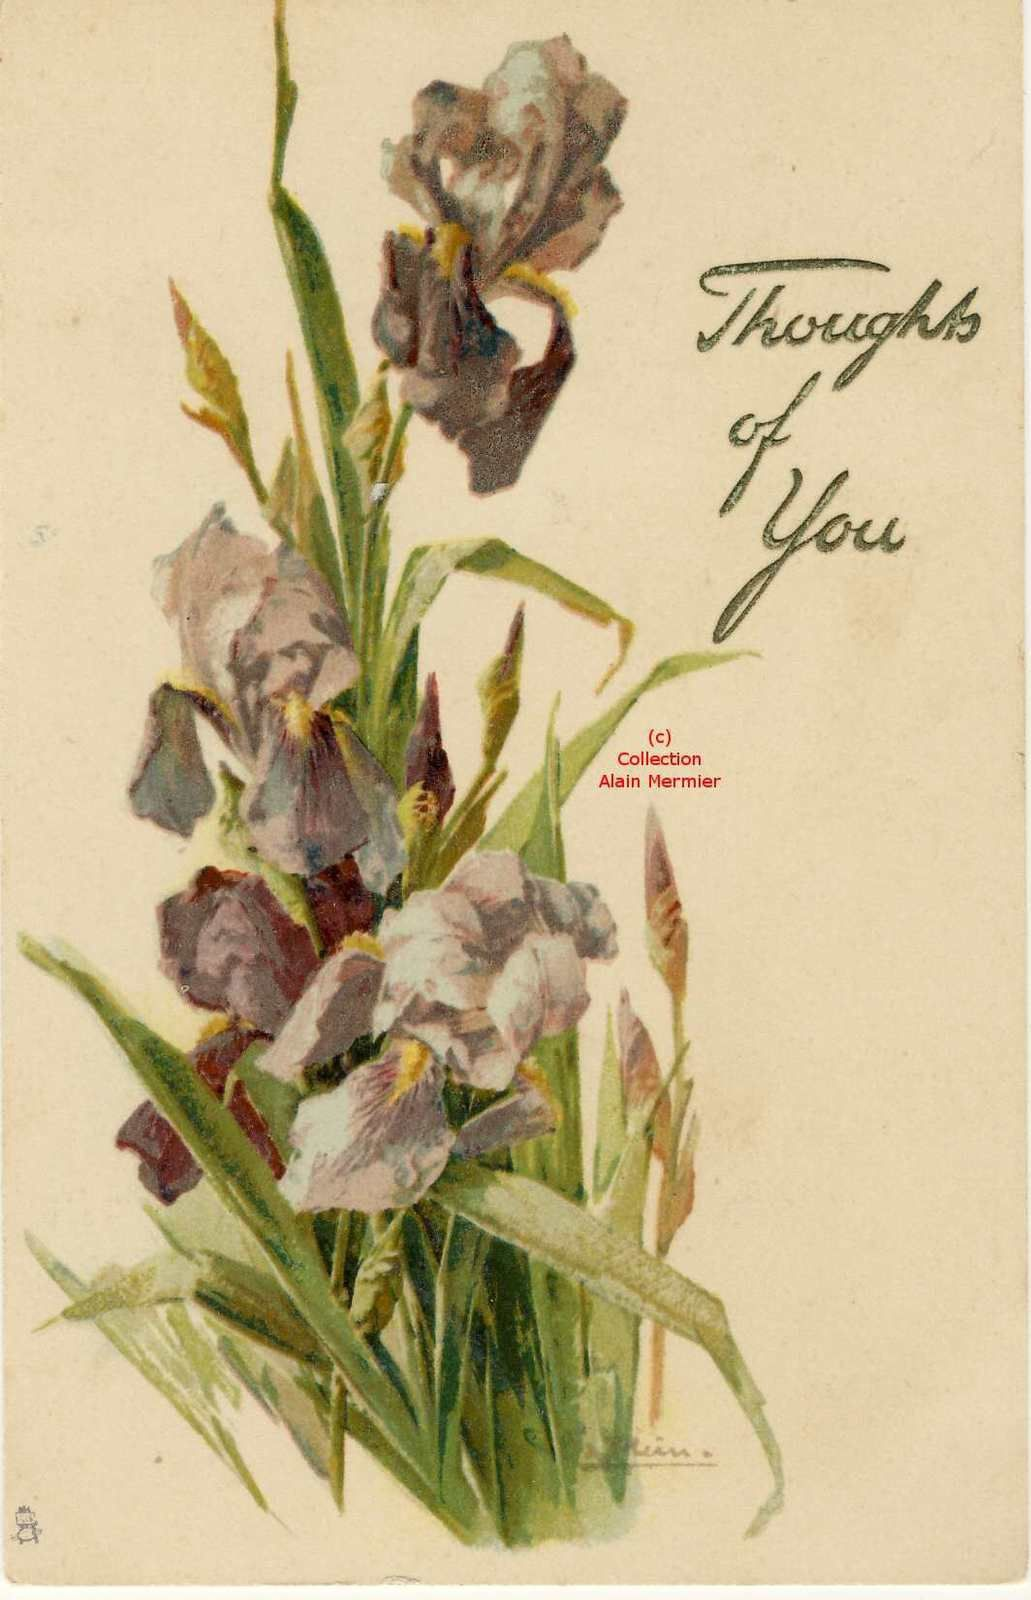 Iris -2292- Illustratrice Catherine KLEIN.   Thoughts of you. Grande Bretagne. 1905.